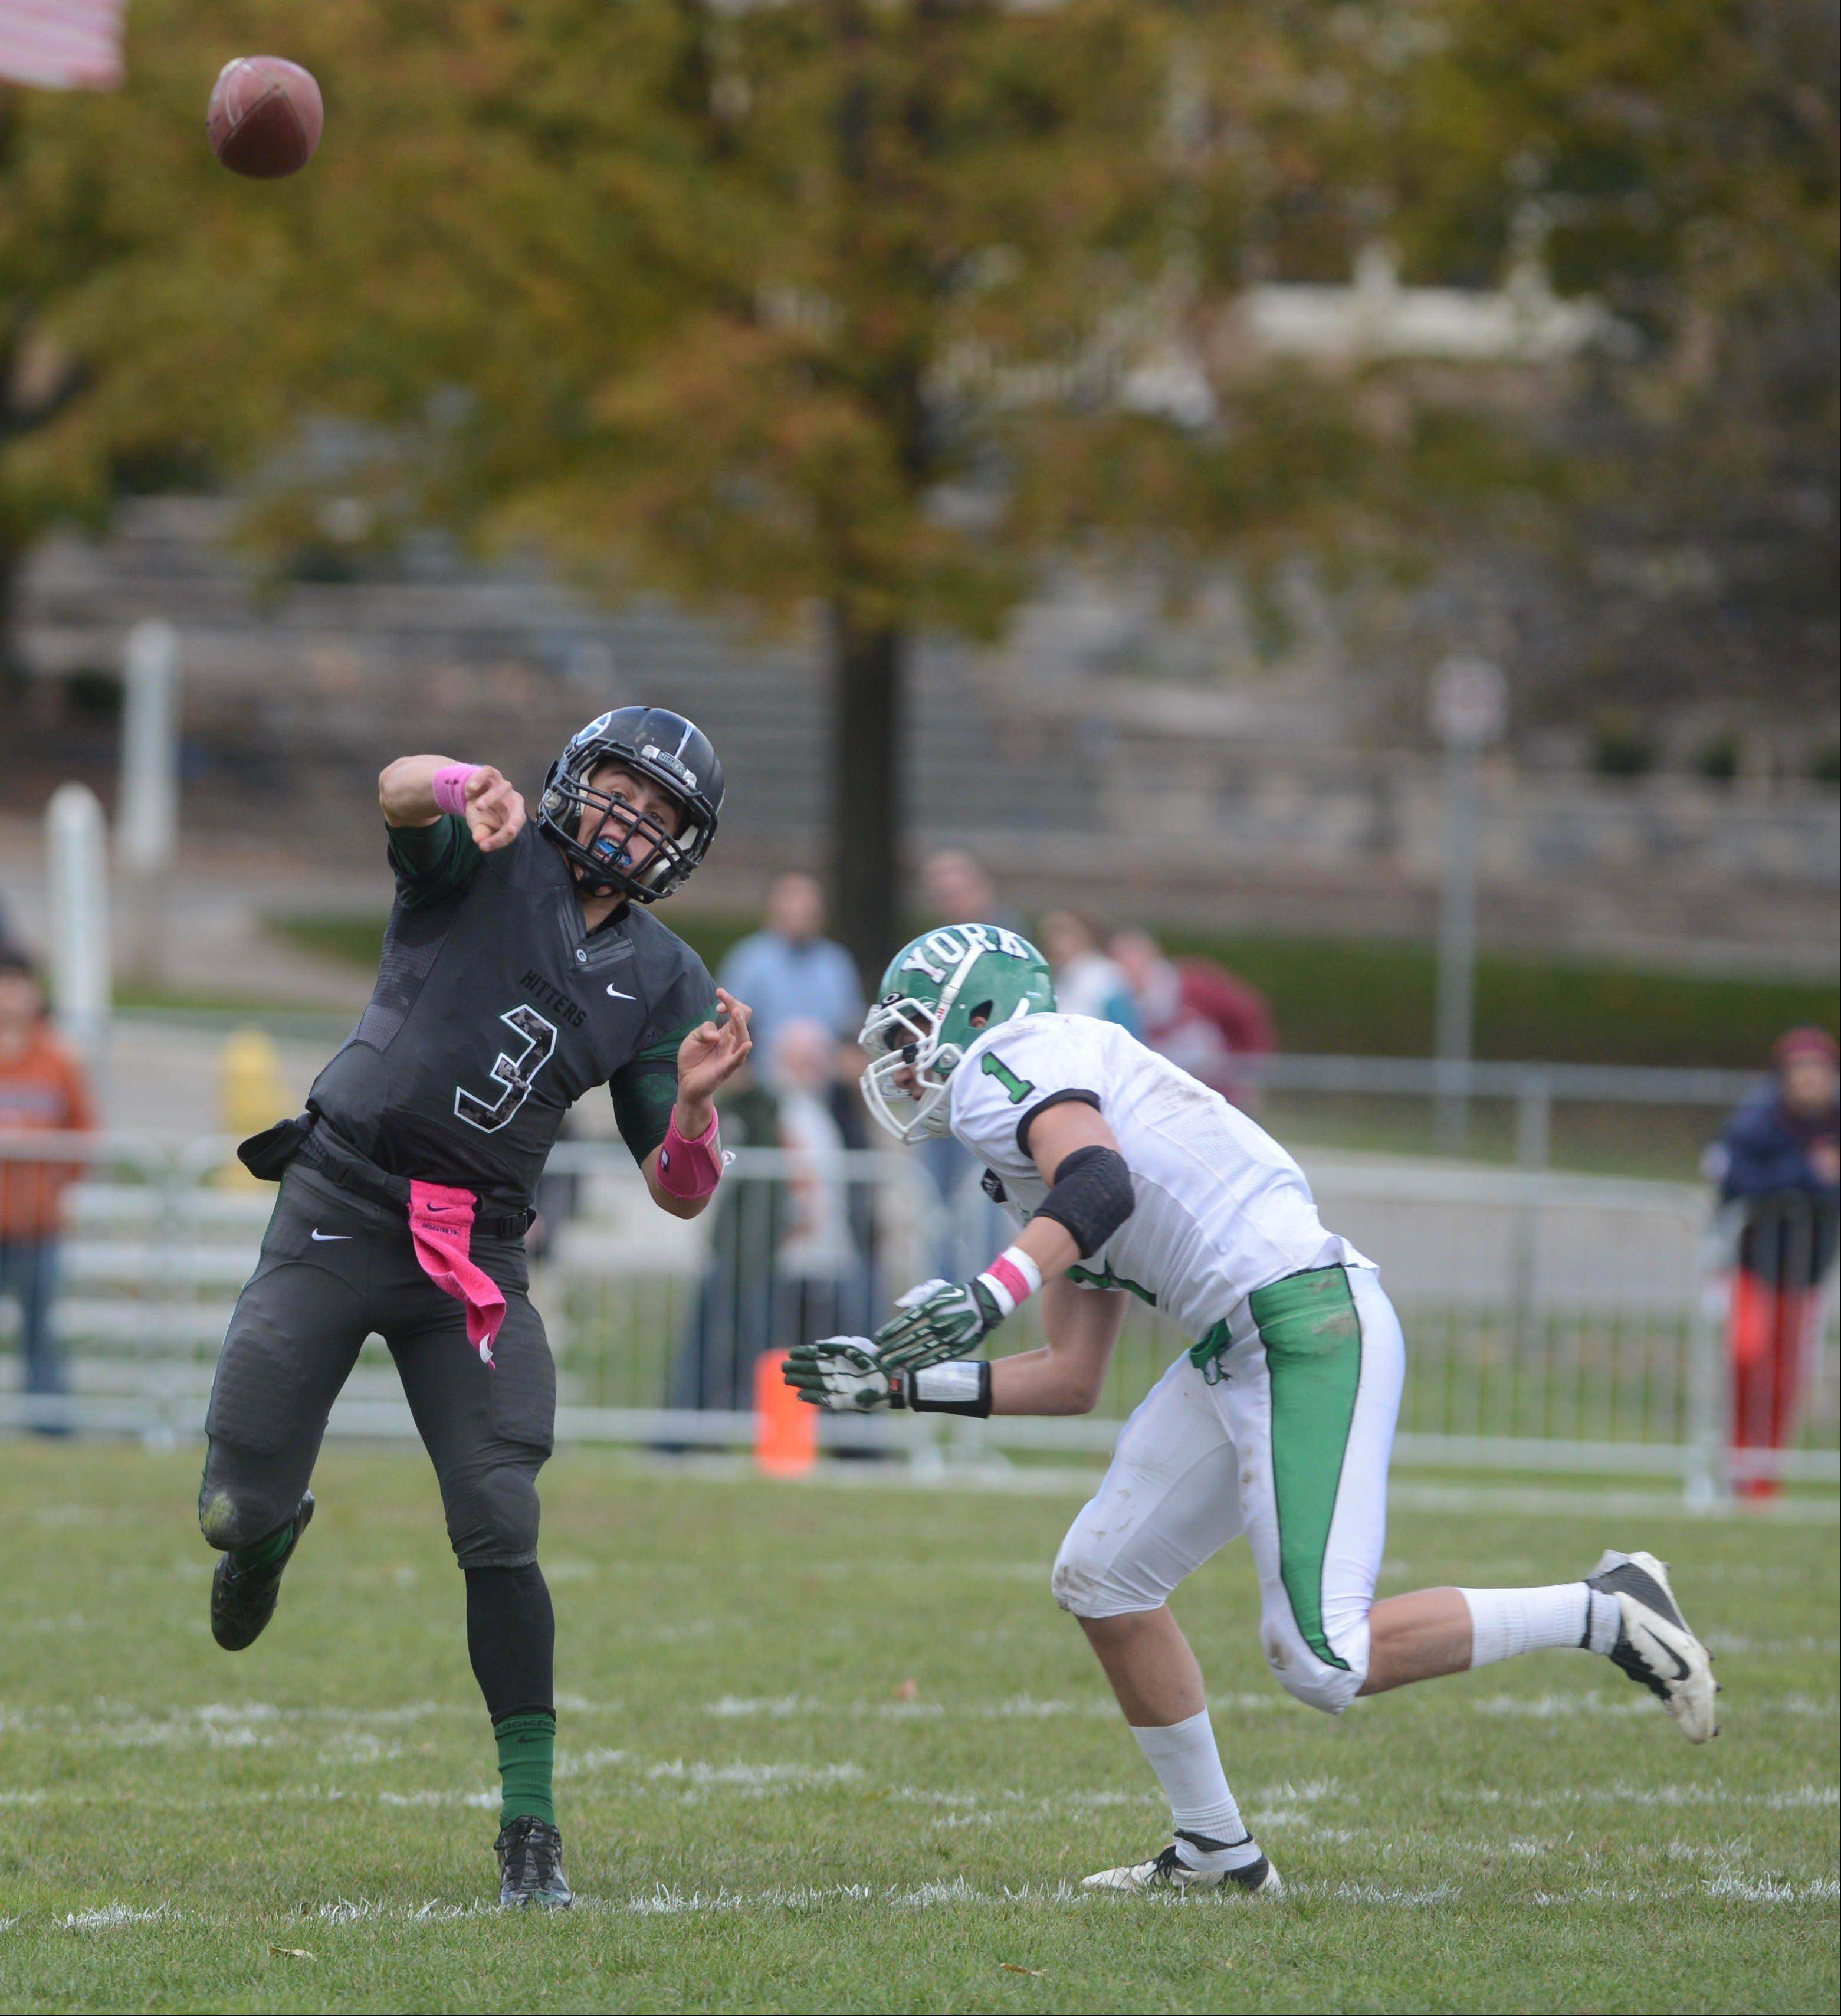 Drew Vogg of Glenbard West throws a pass as Mike Kosanovich of York cloeses in on him Saturday in Glen Ellyn.